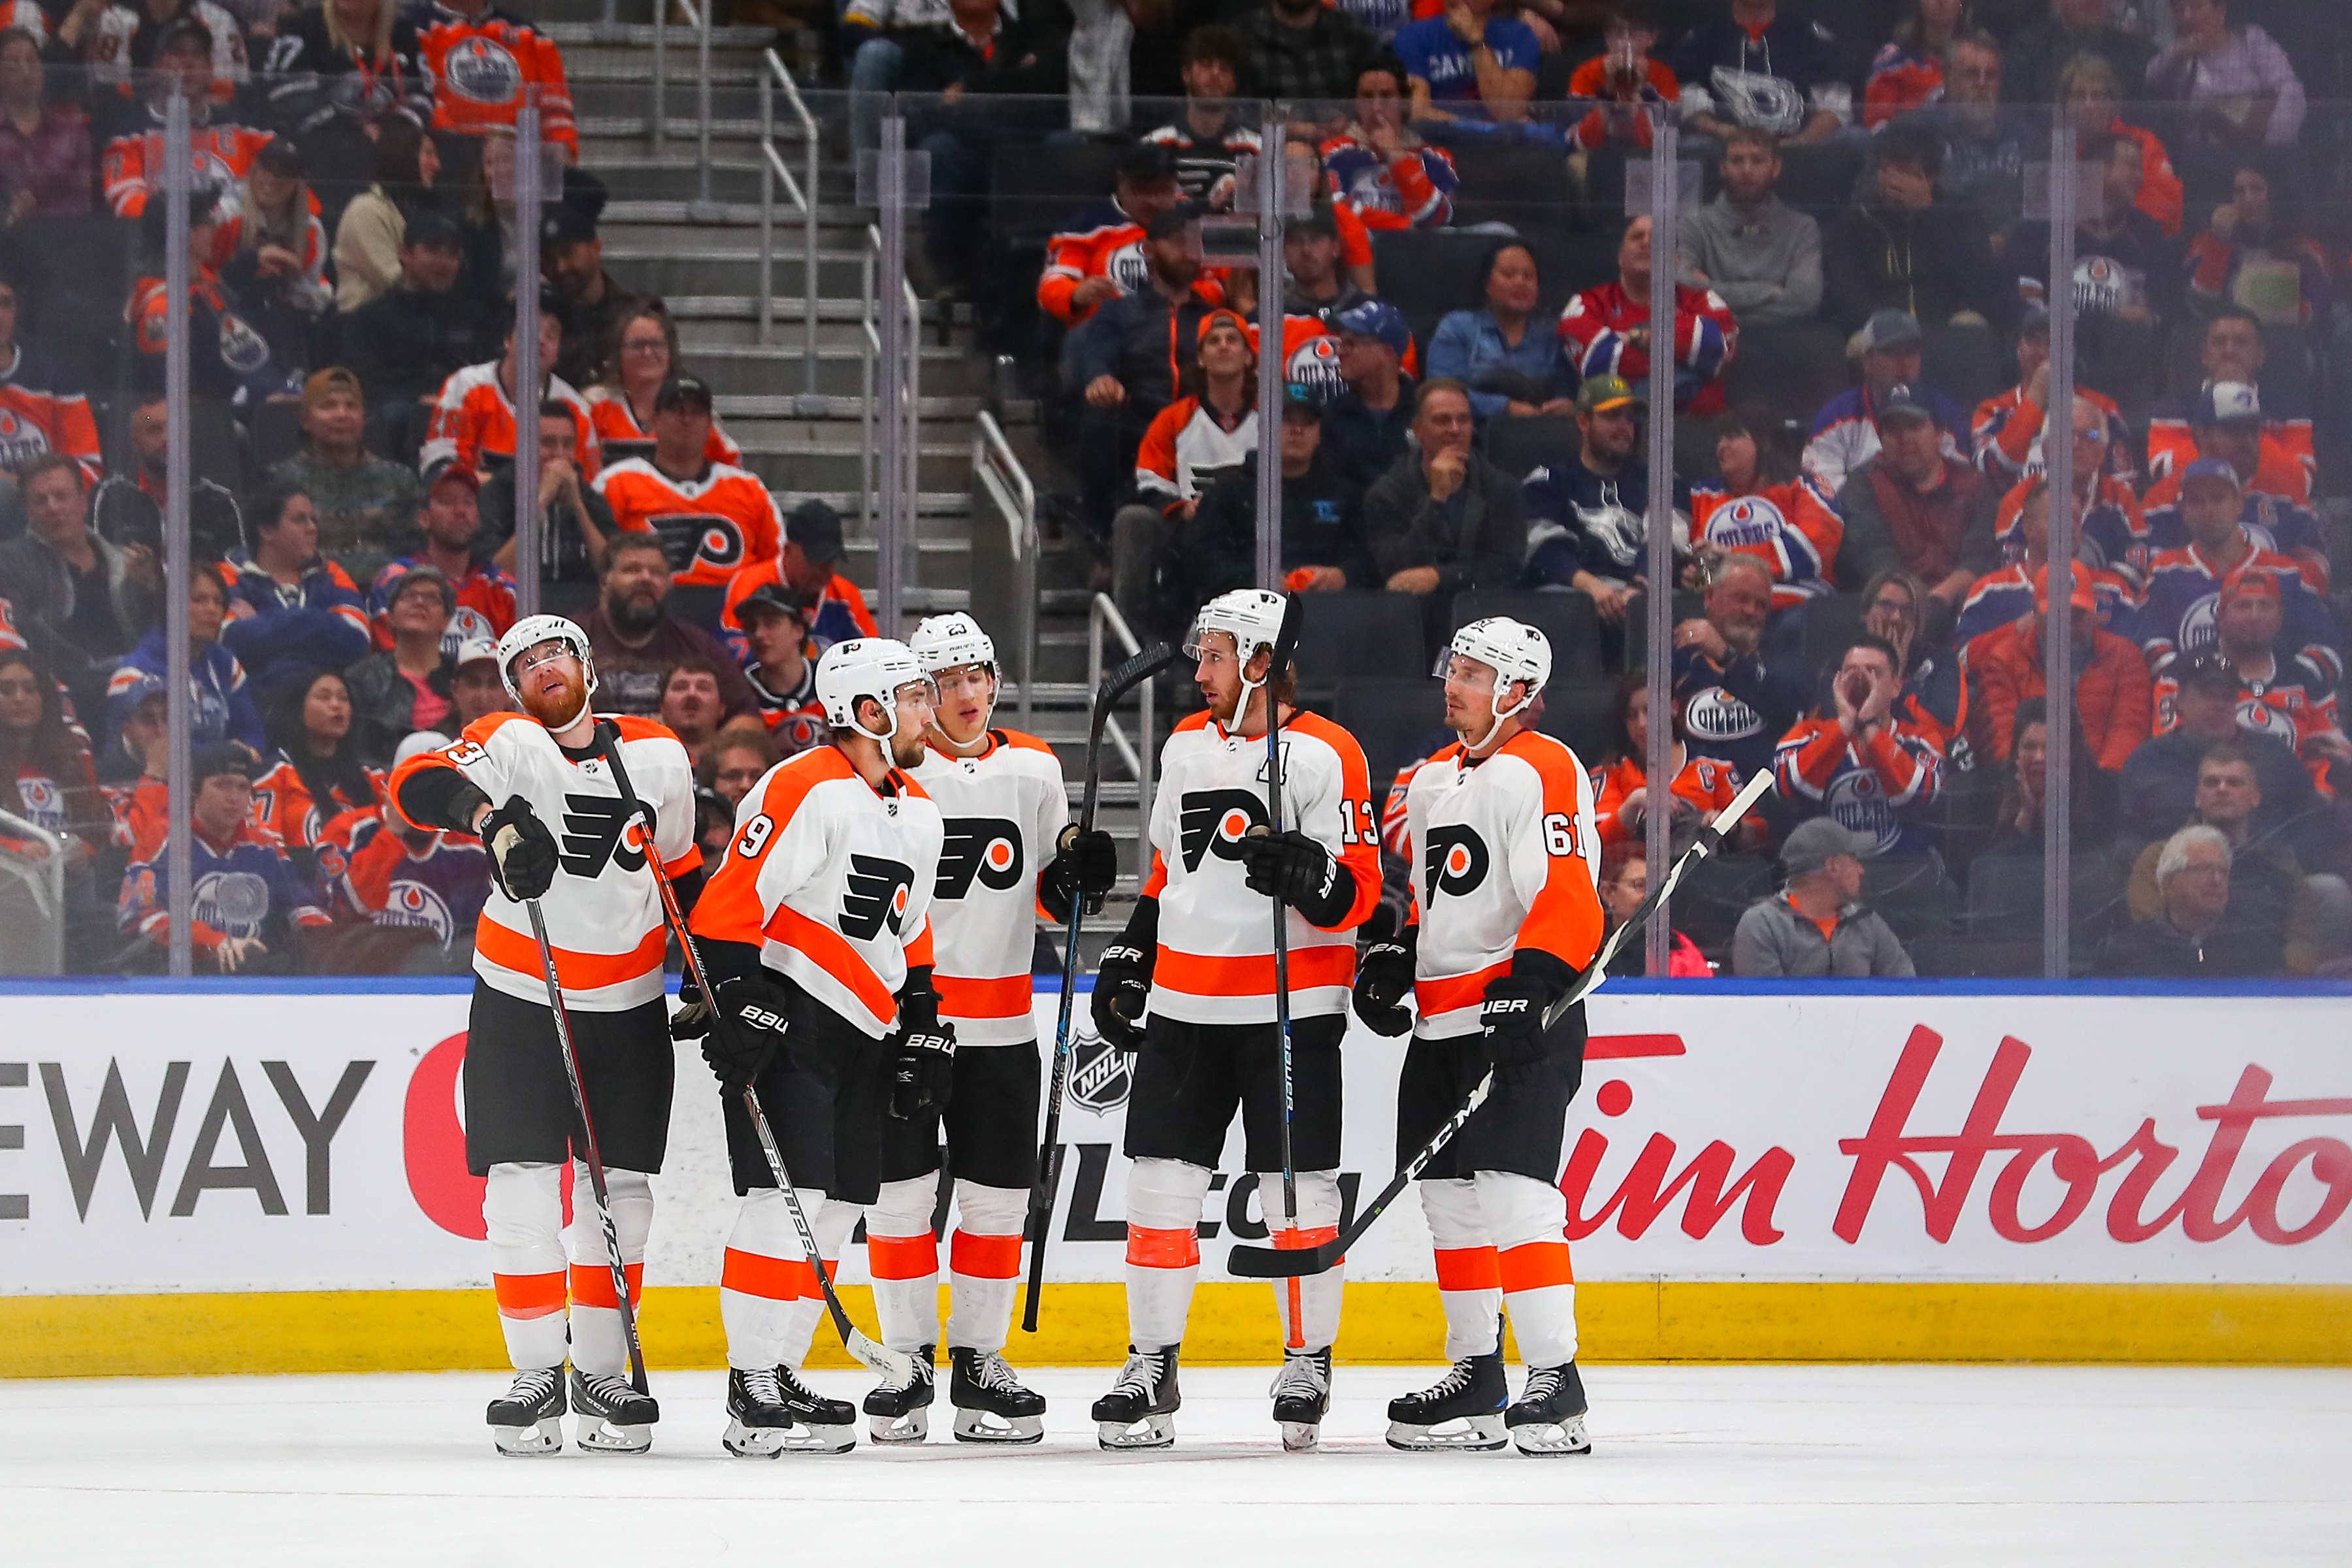 NHL: OCT 16 Flyers at Oilers